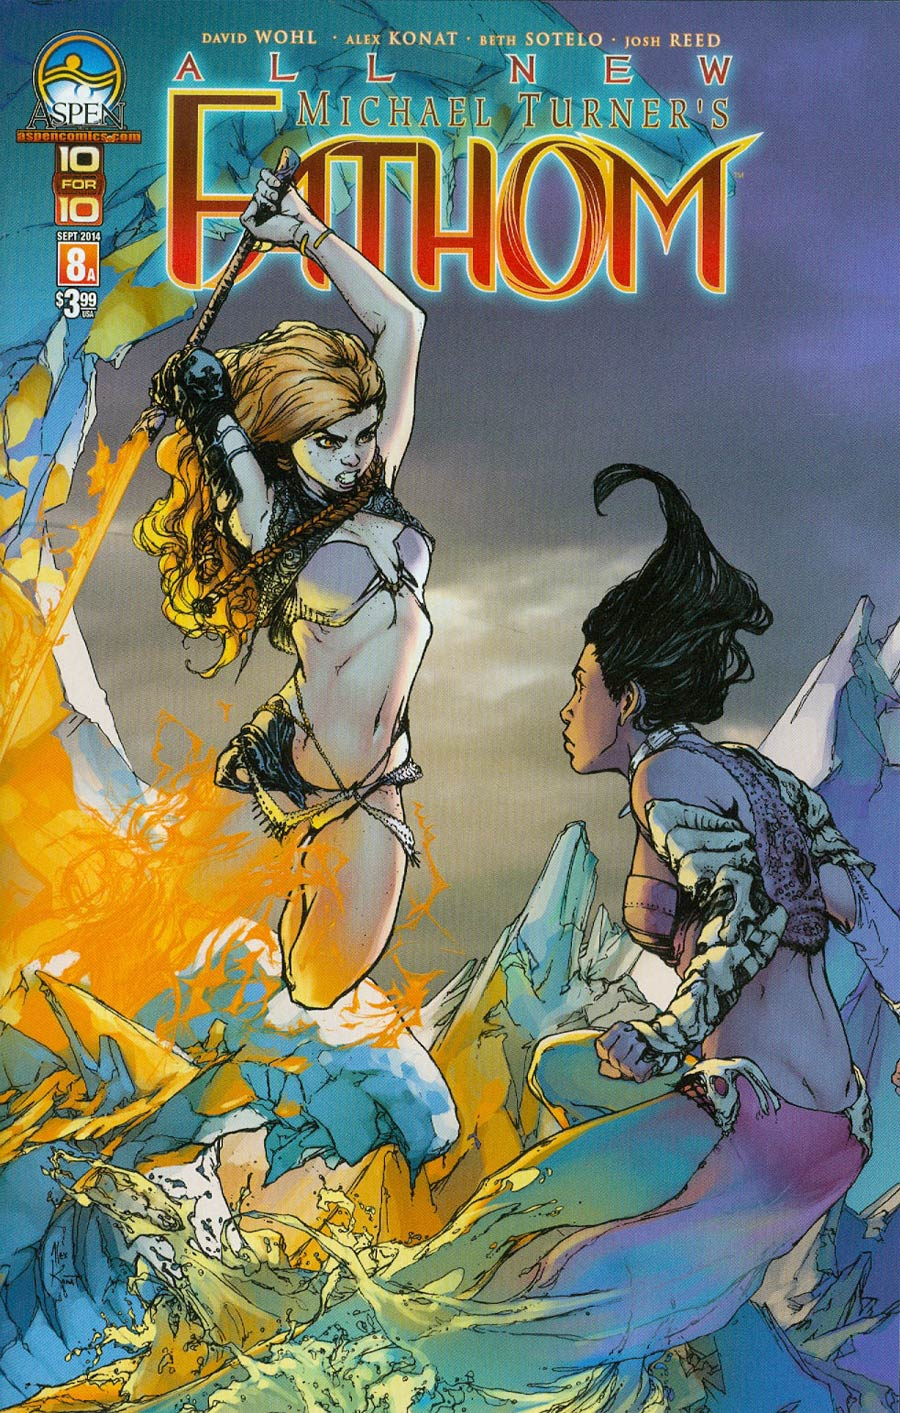 All New Fathom #8 Cover A Alex Konat